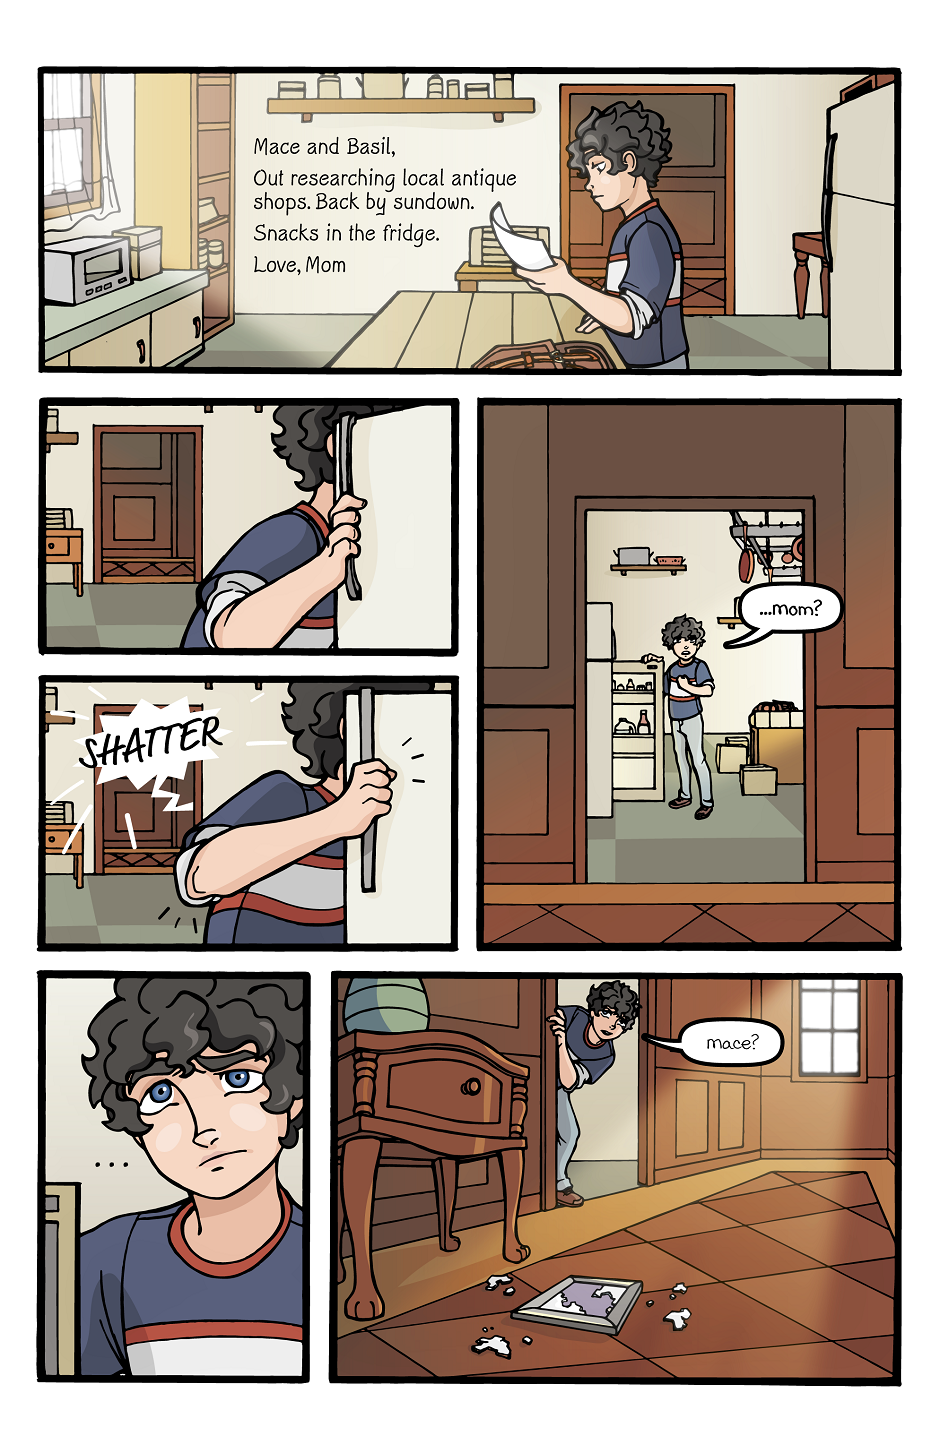 MBB_Ch02-P16_forSS.png